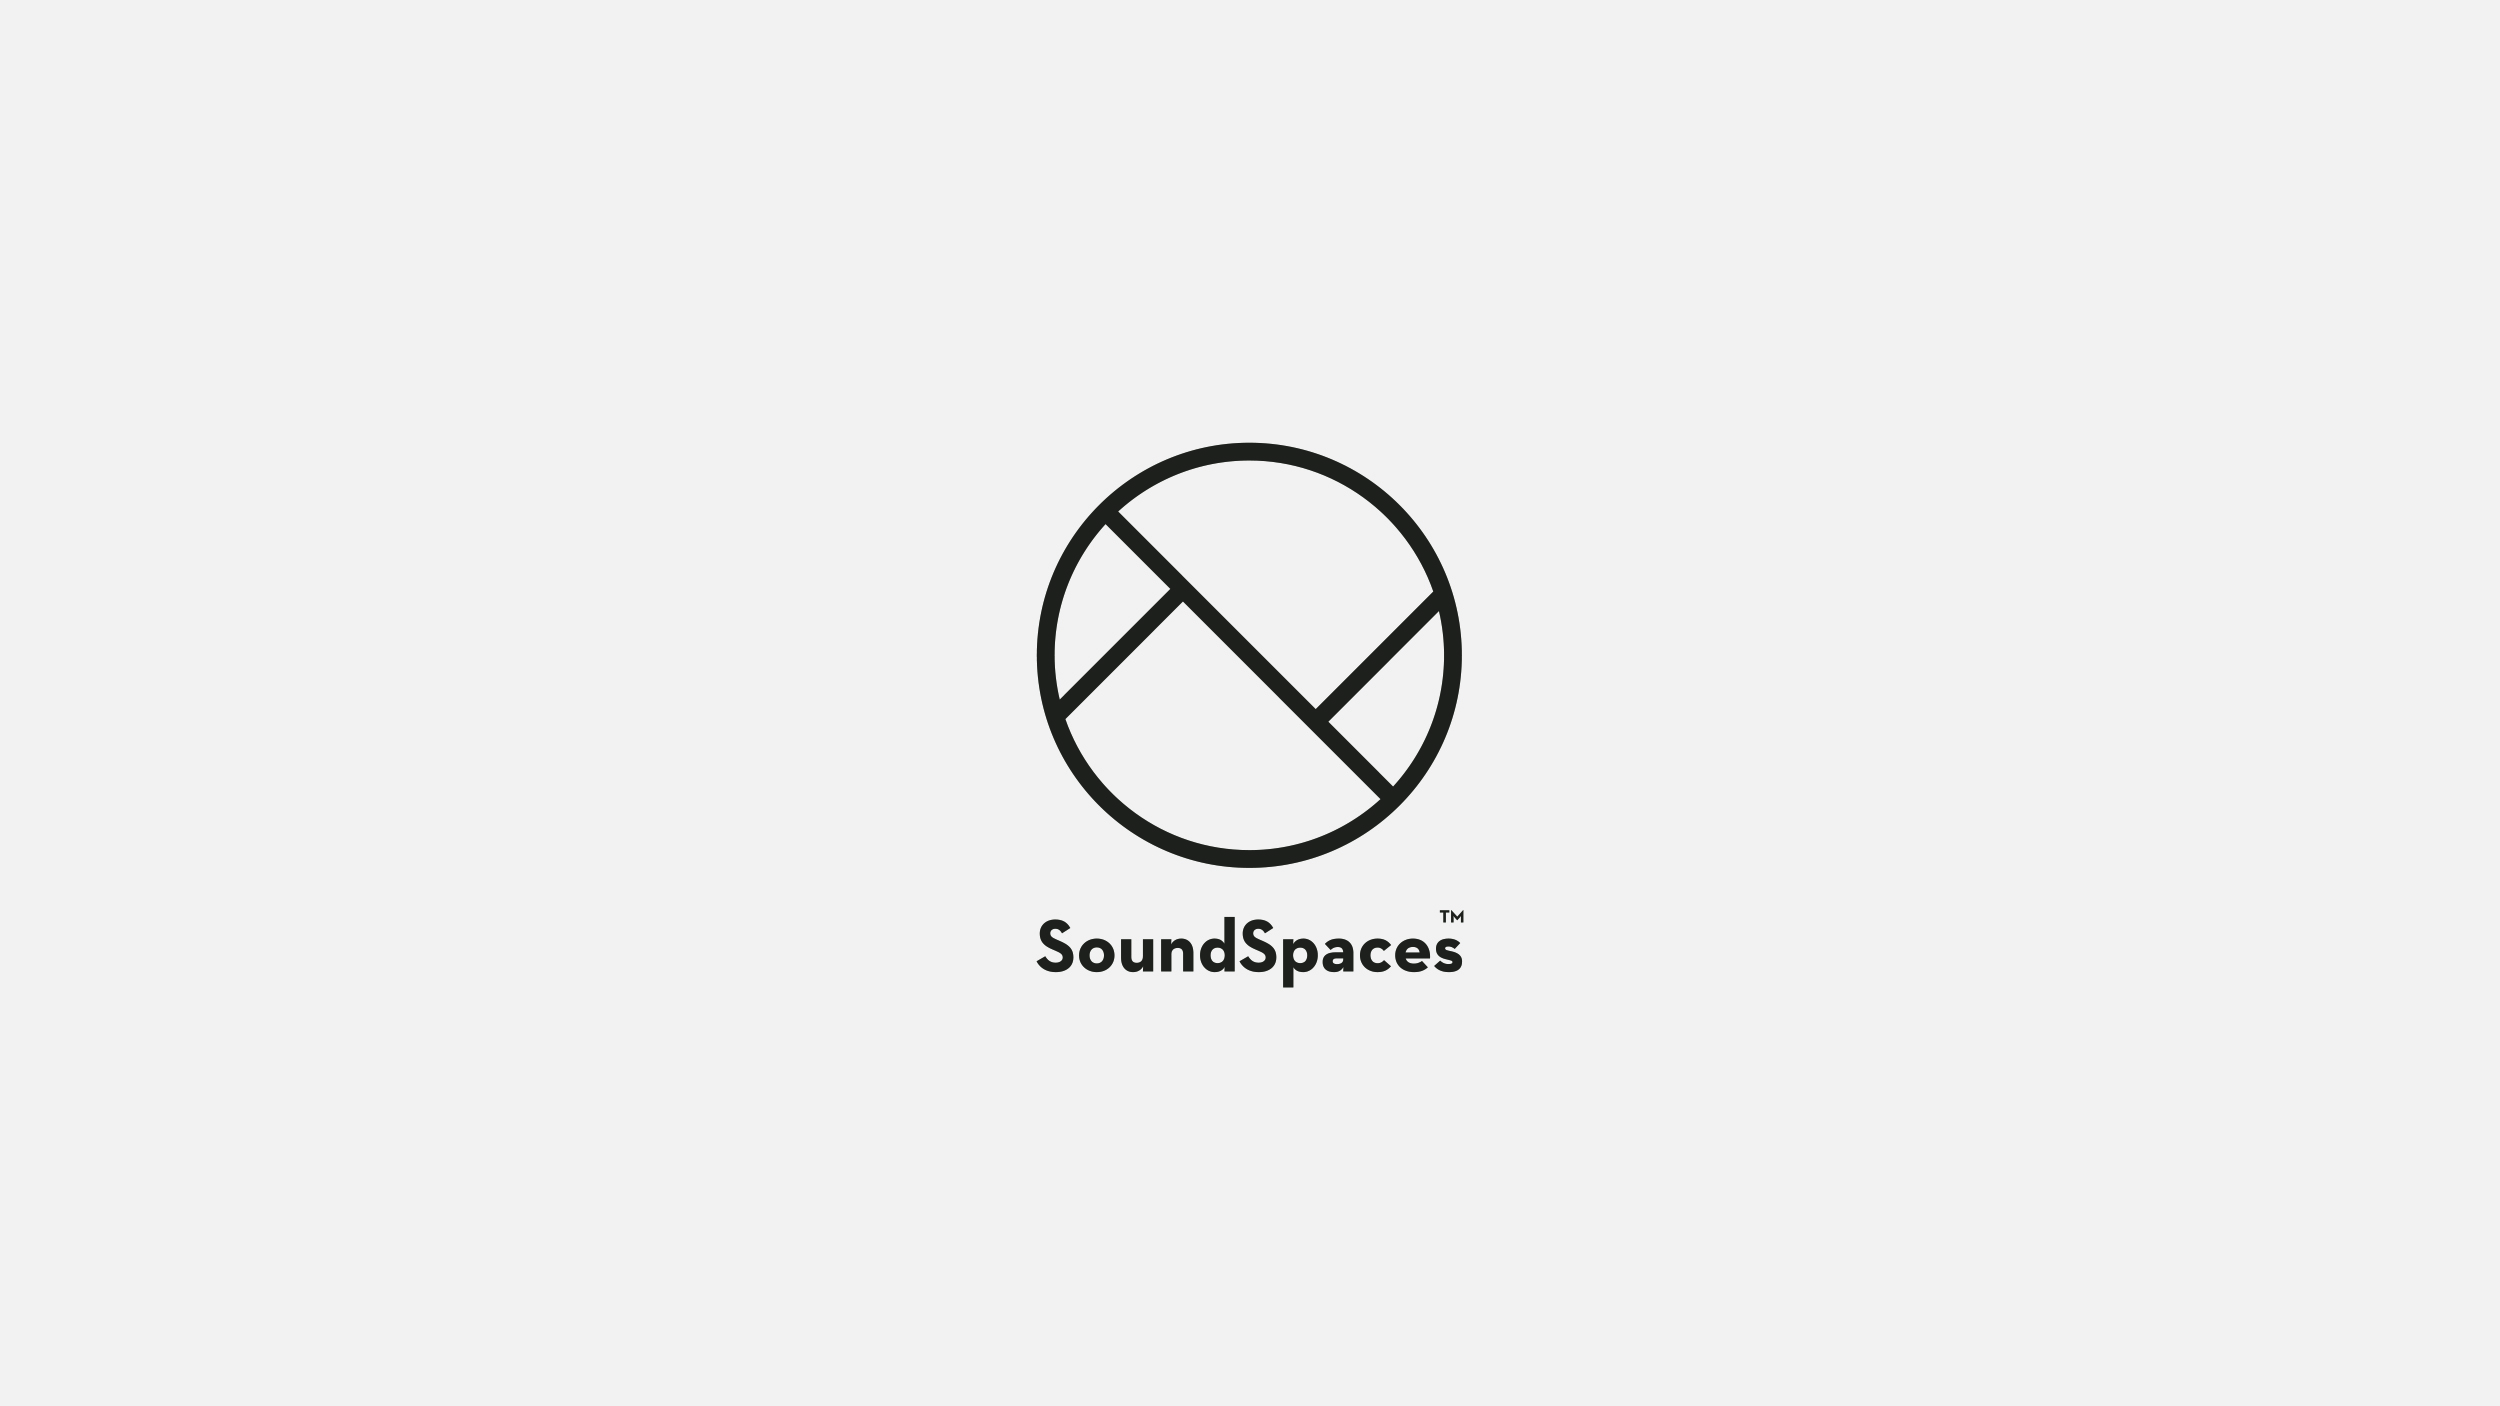 Logo_0005_SoundSpaces2